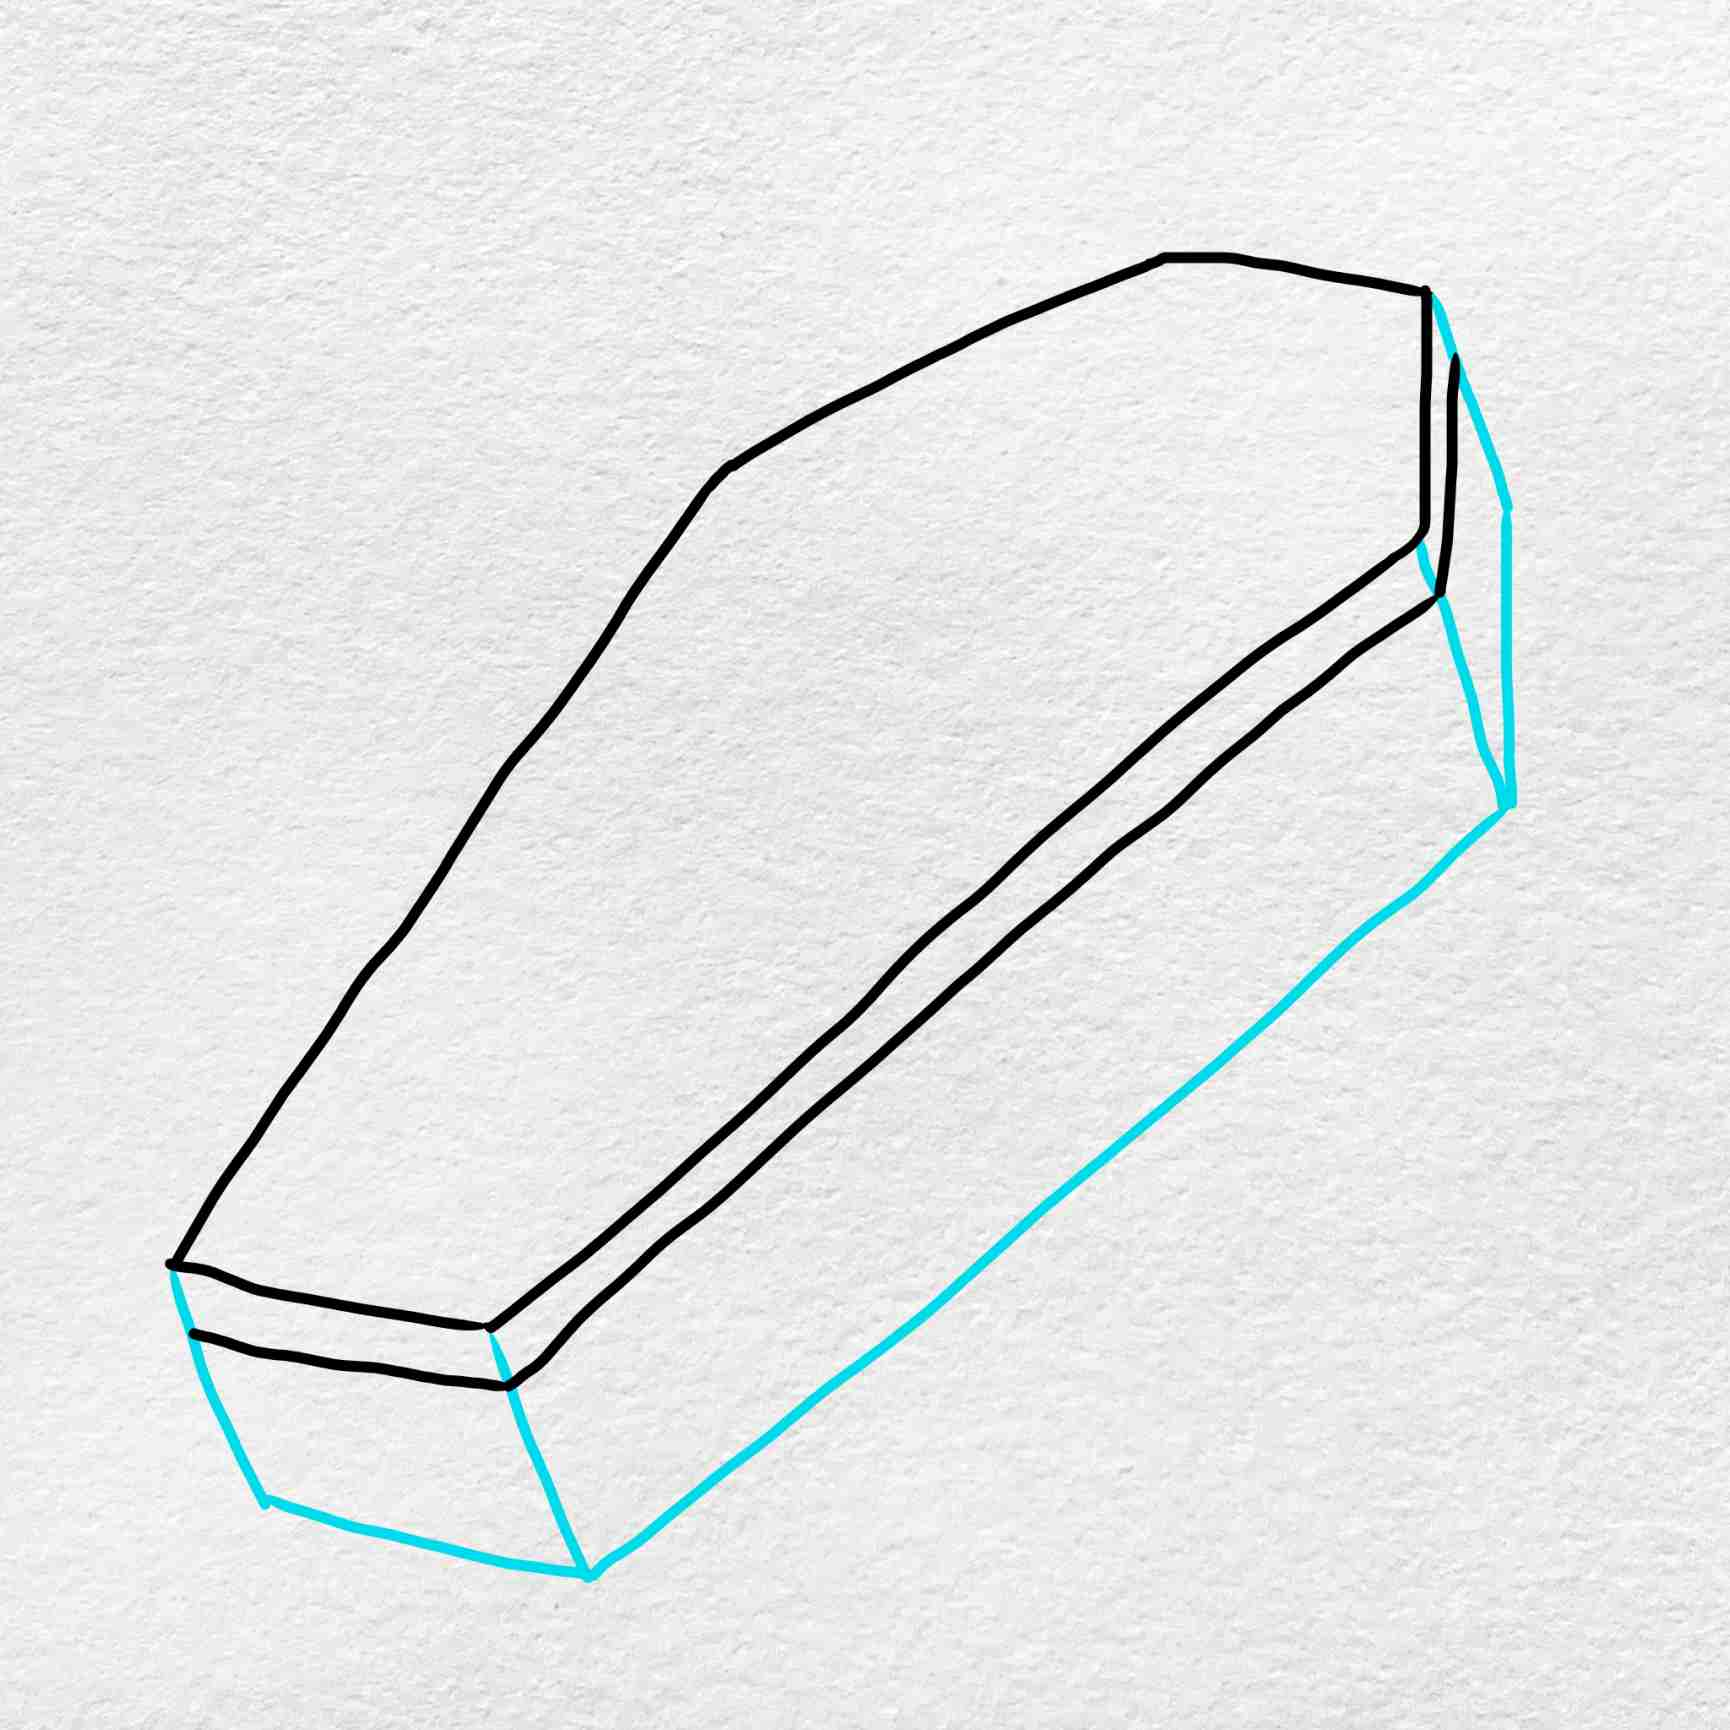 How To Draw A Coffin: Step 4